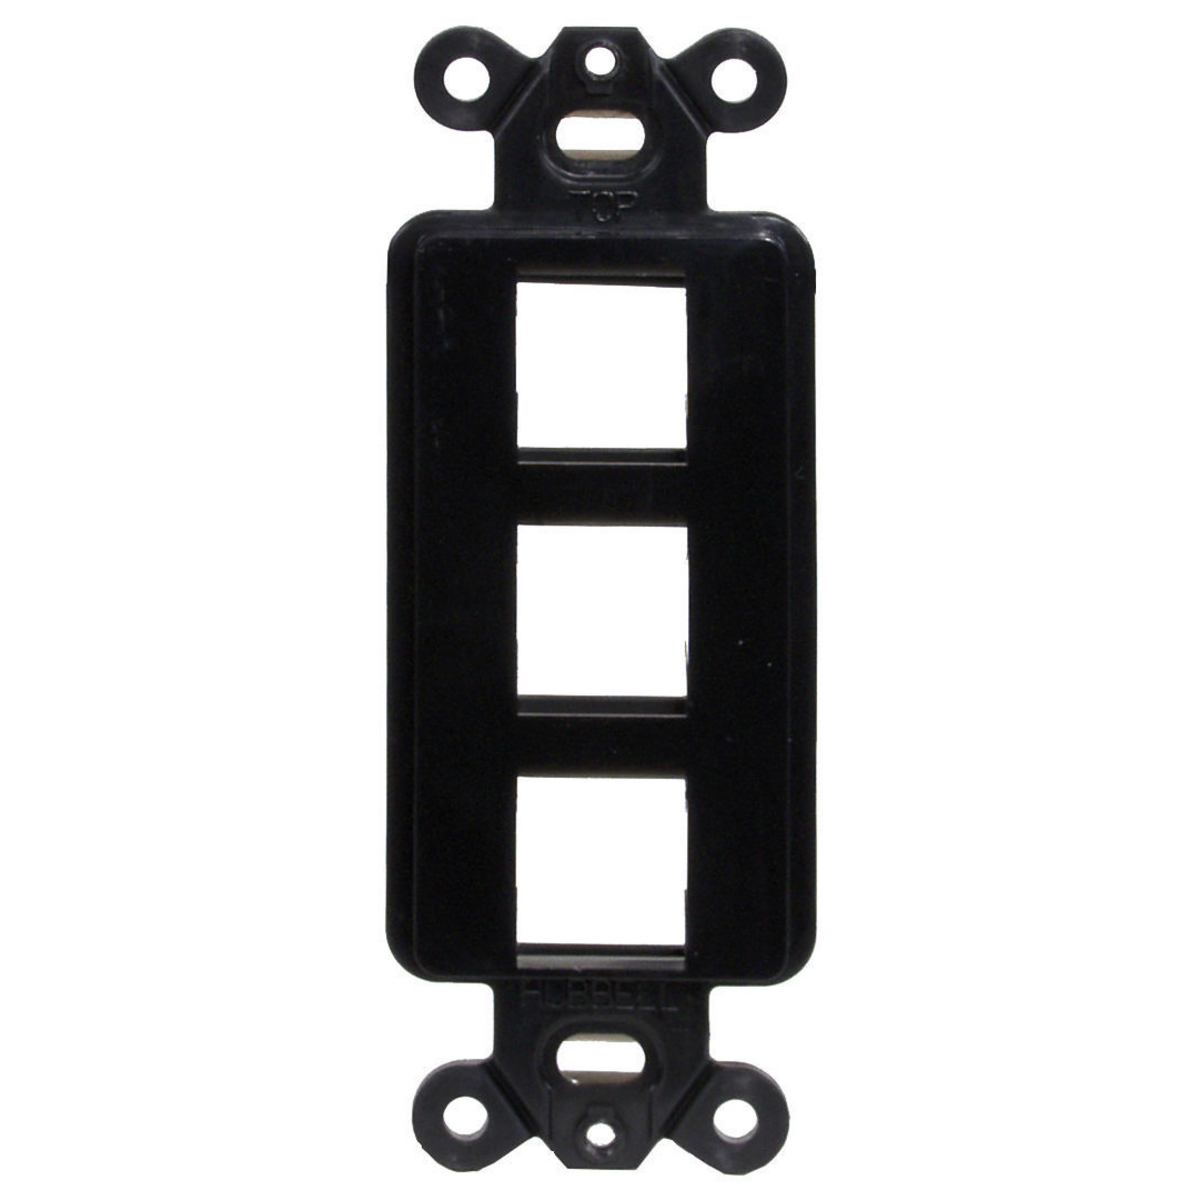 Hubbell ISF3BK 1-Gang Black 3-Port Face Plate